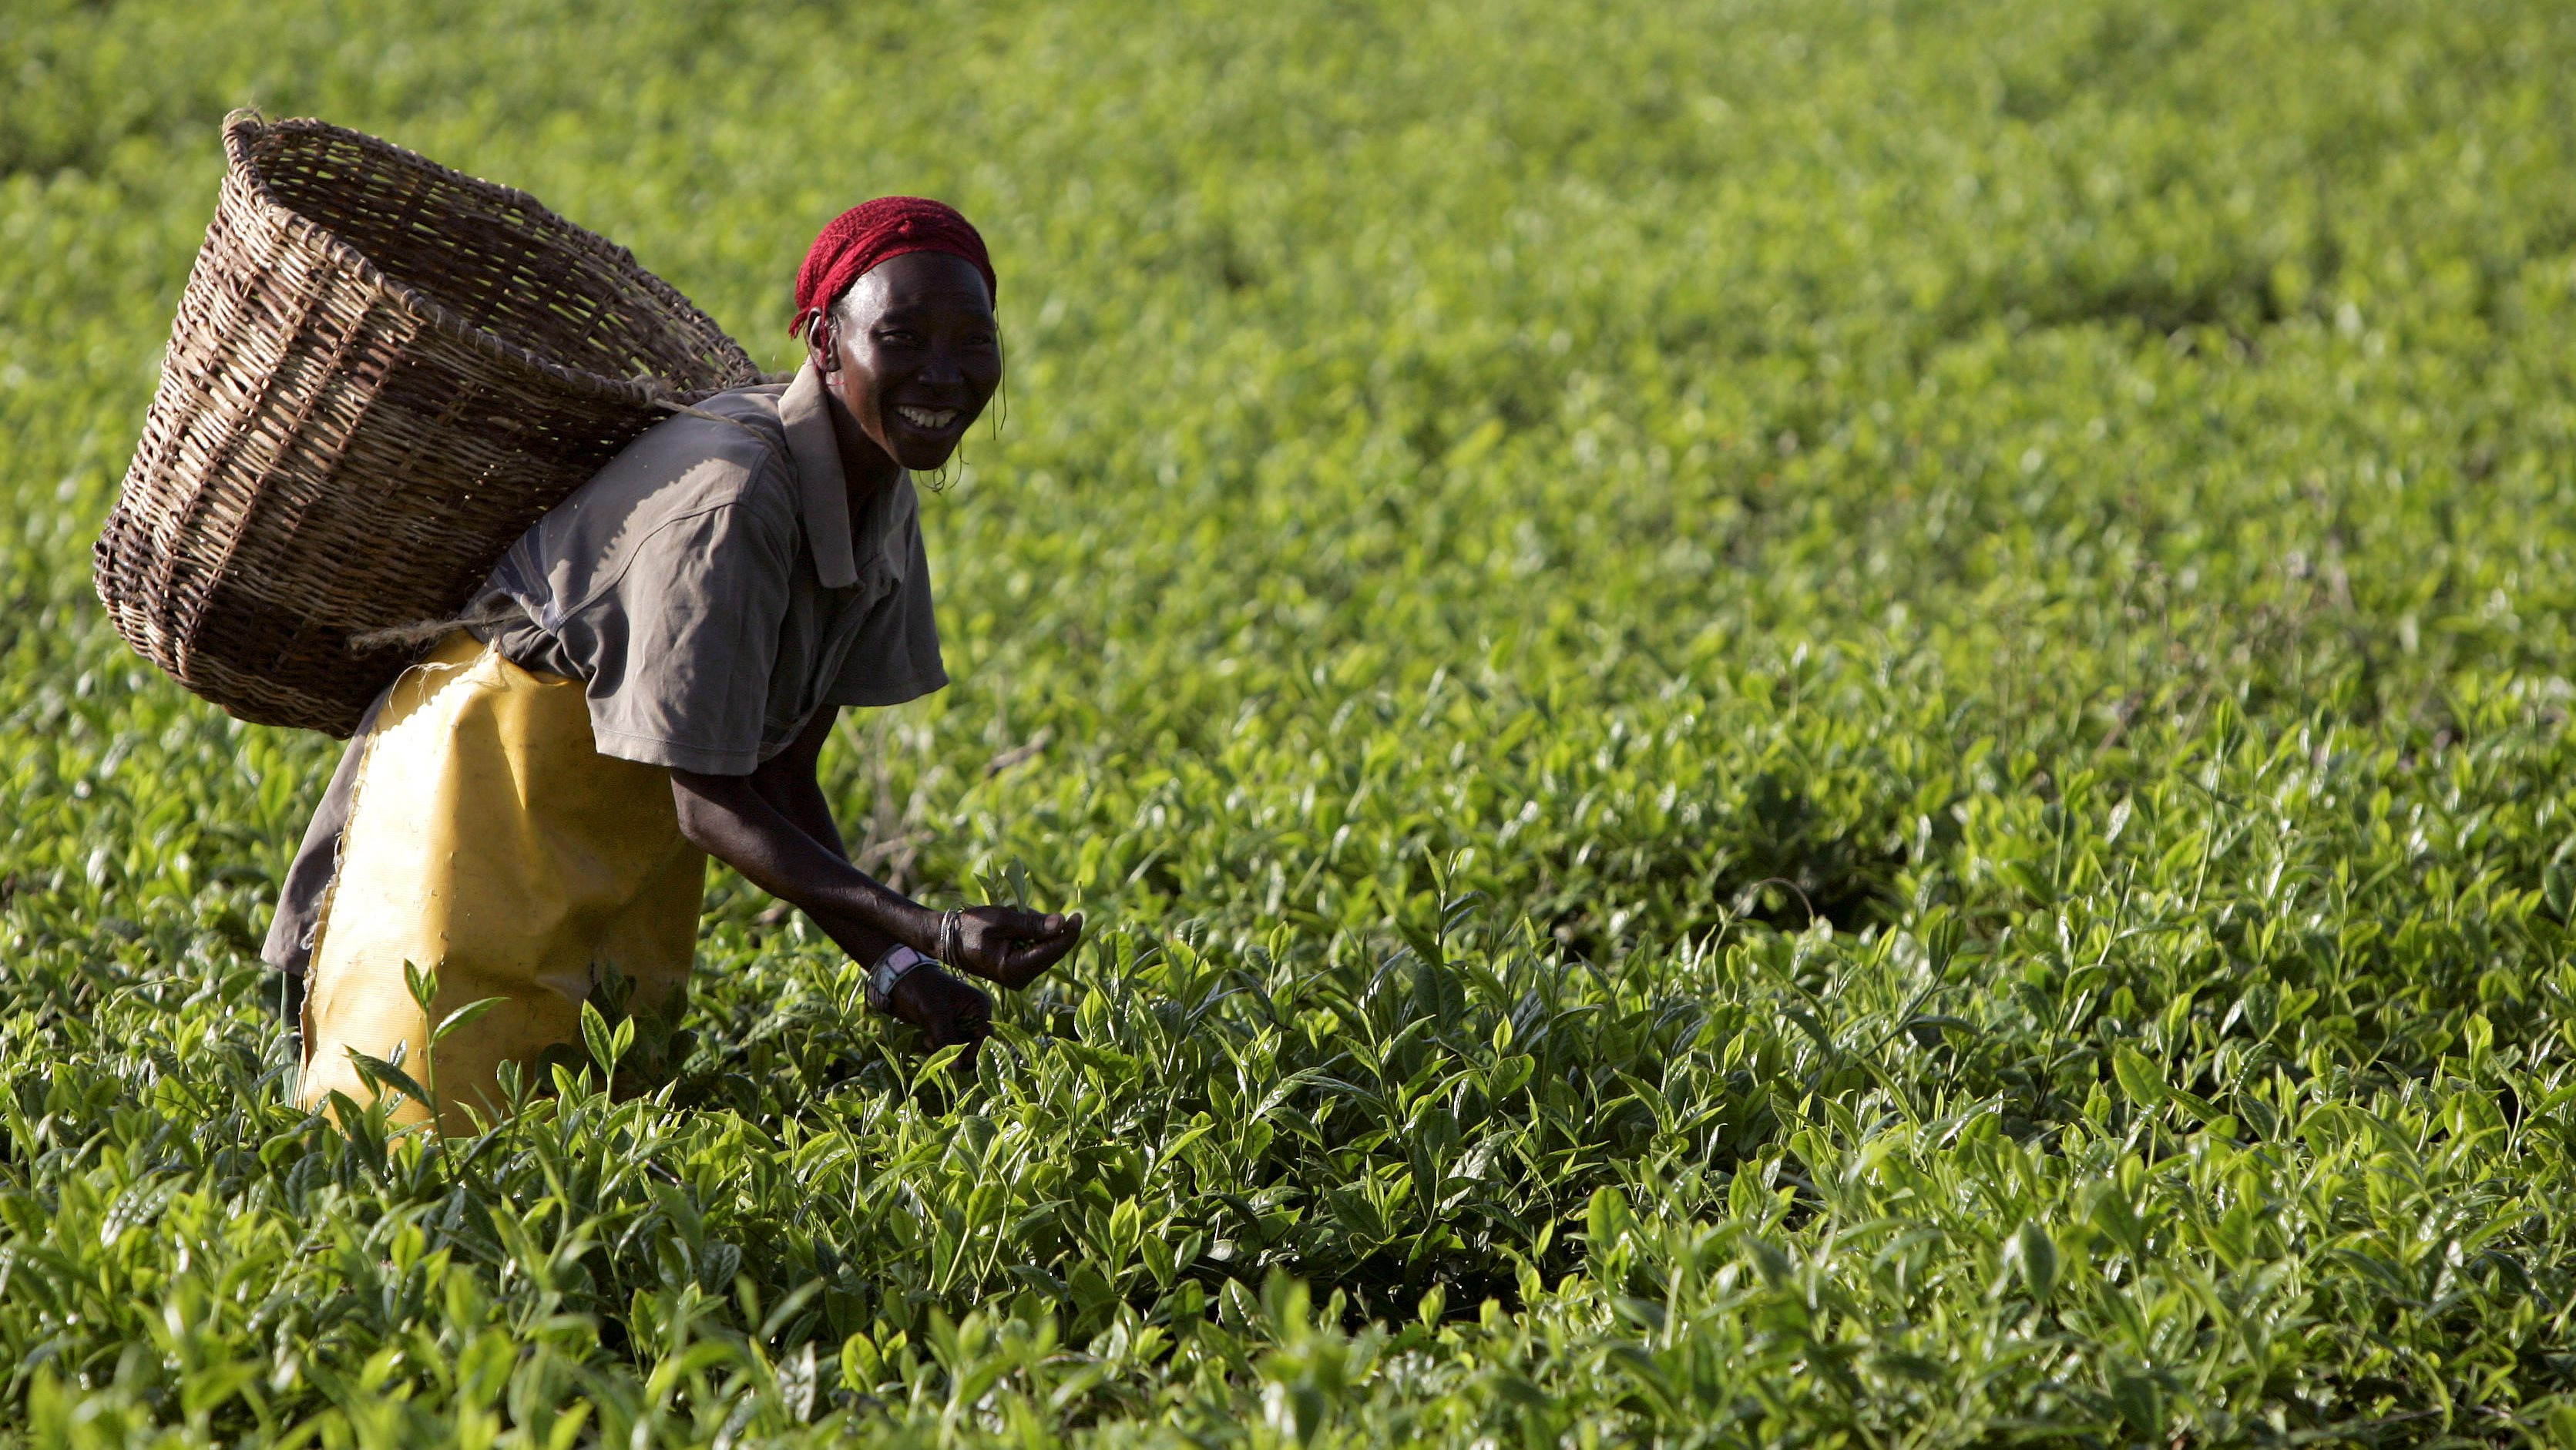 Workers pick tea at a plantation outside Kericho February 6, 2008. Kenyan business leaders on Tuesday urged politicians to move quickly to end a post-election crisis that has killed 1,000 people and threatens progress in east Africa's biggest economy.